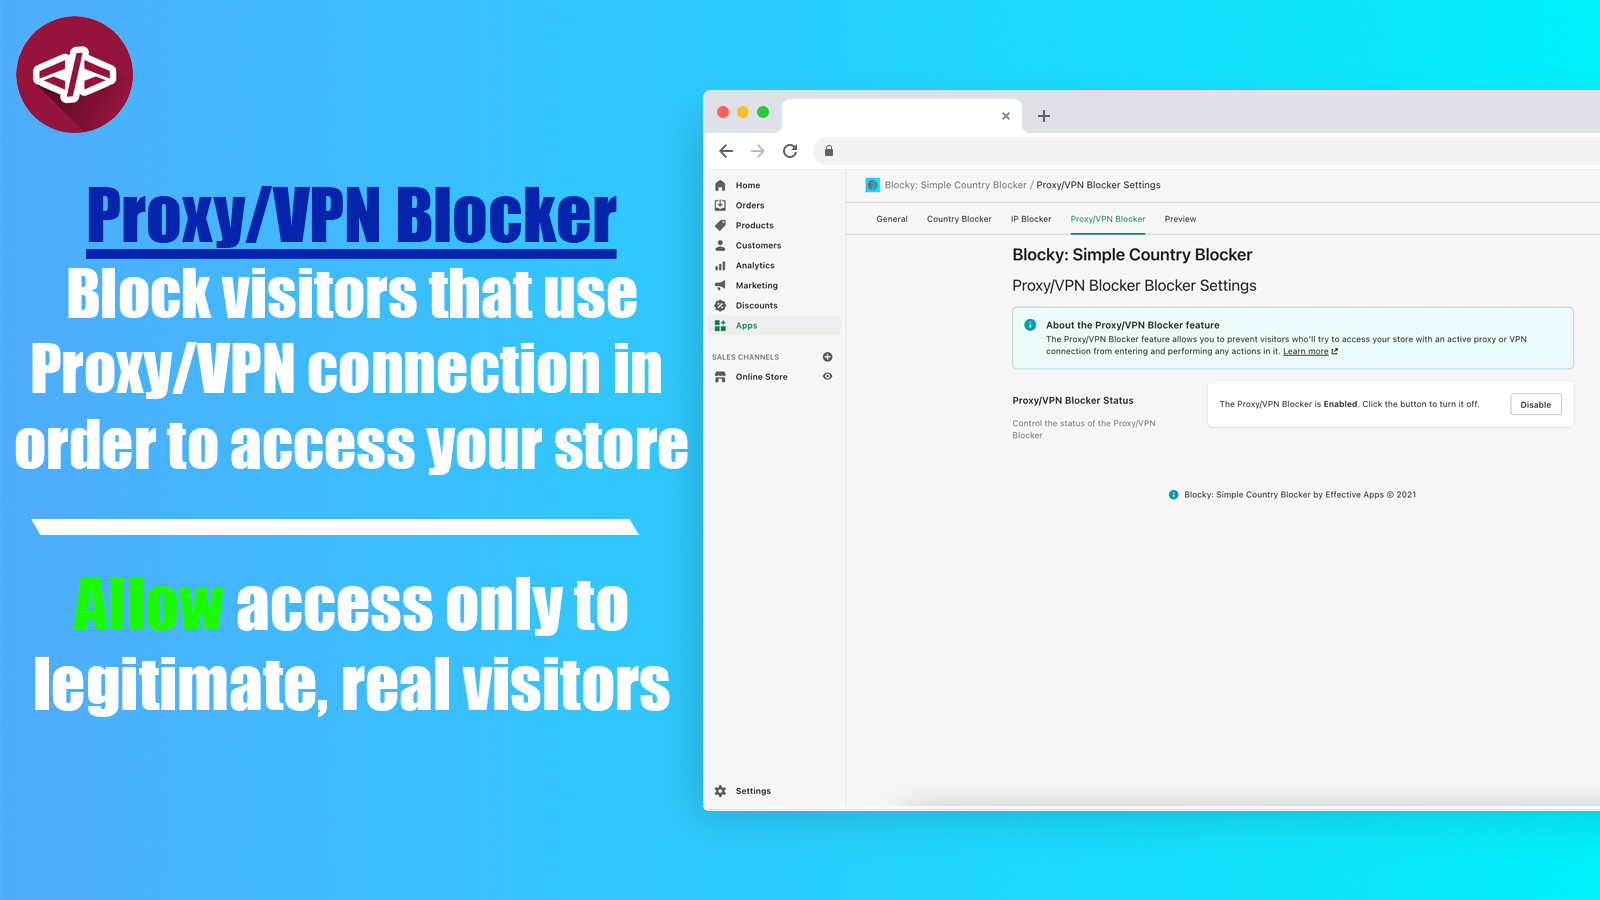 The dashboard of the Proxy VPN blocker feature